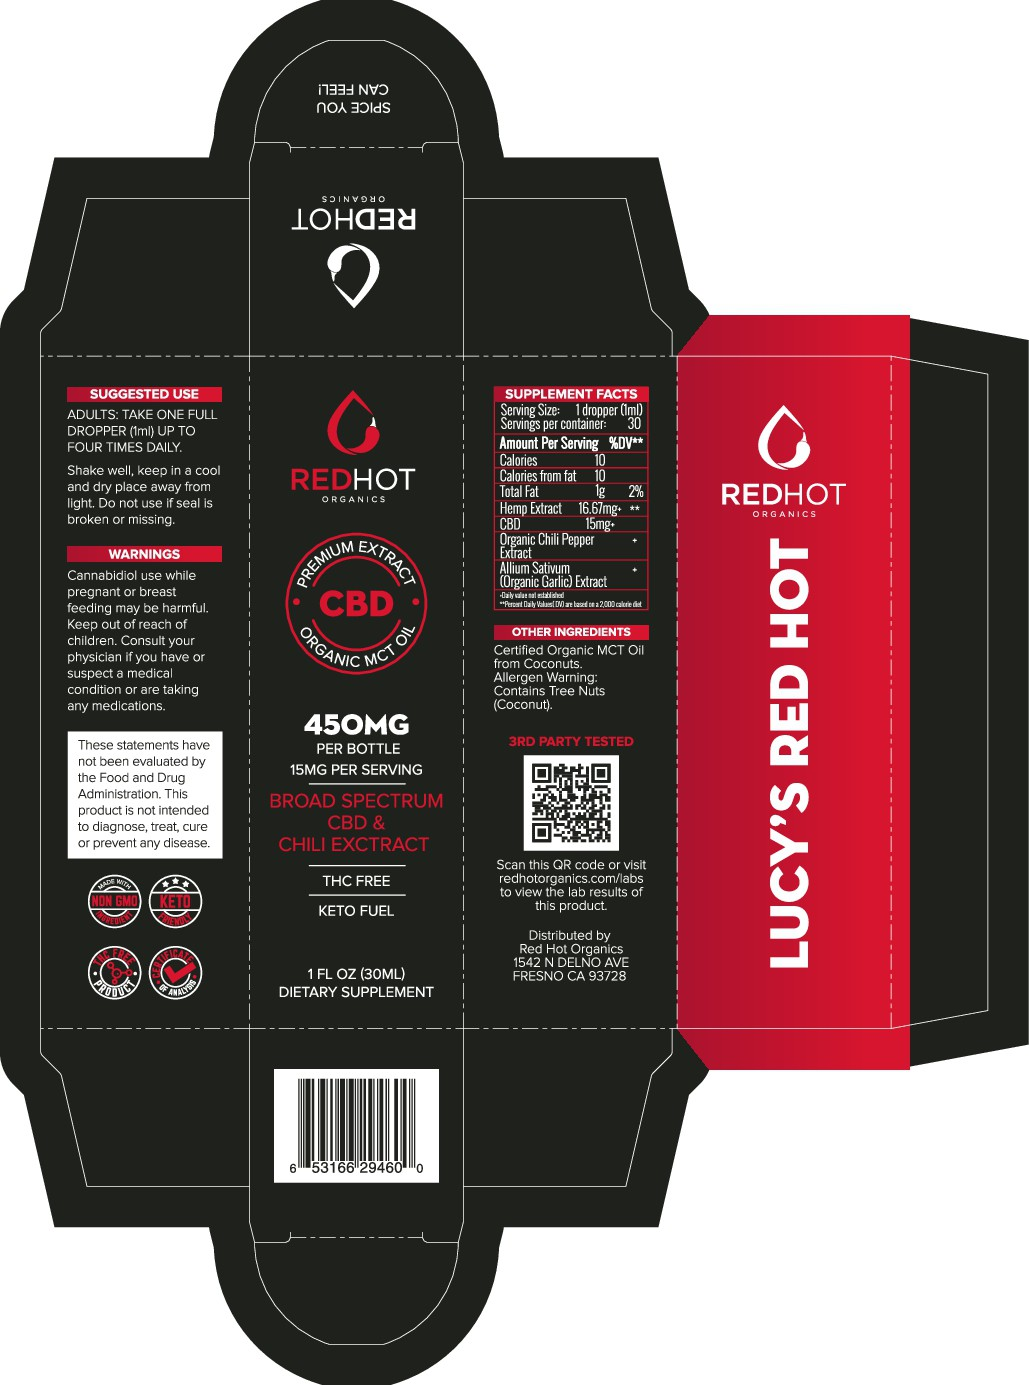 Lucy's Red Hot 1oz Label and Box Revisions